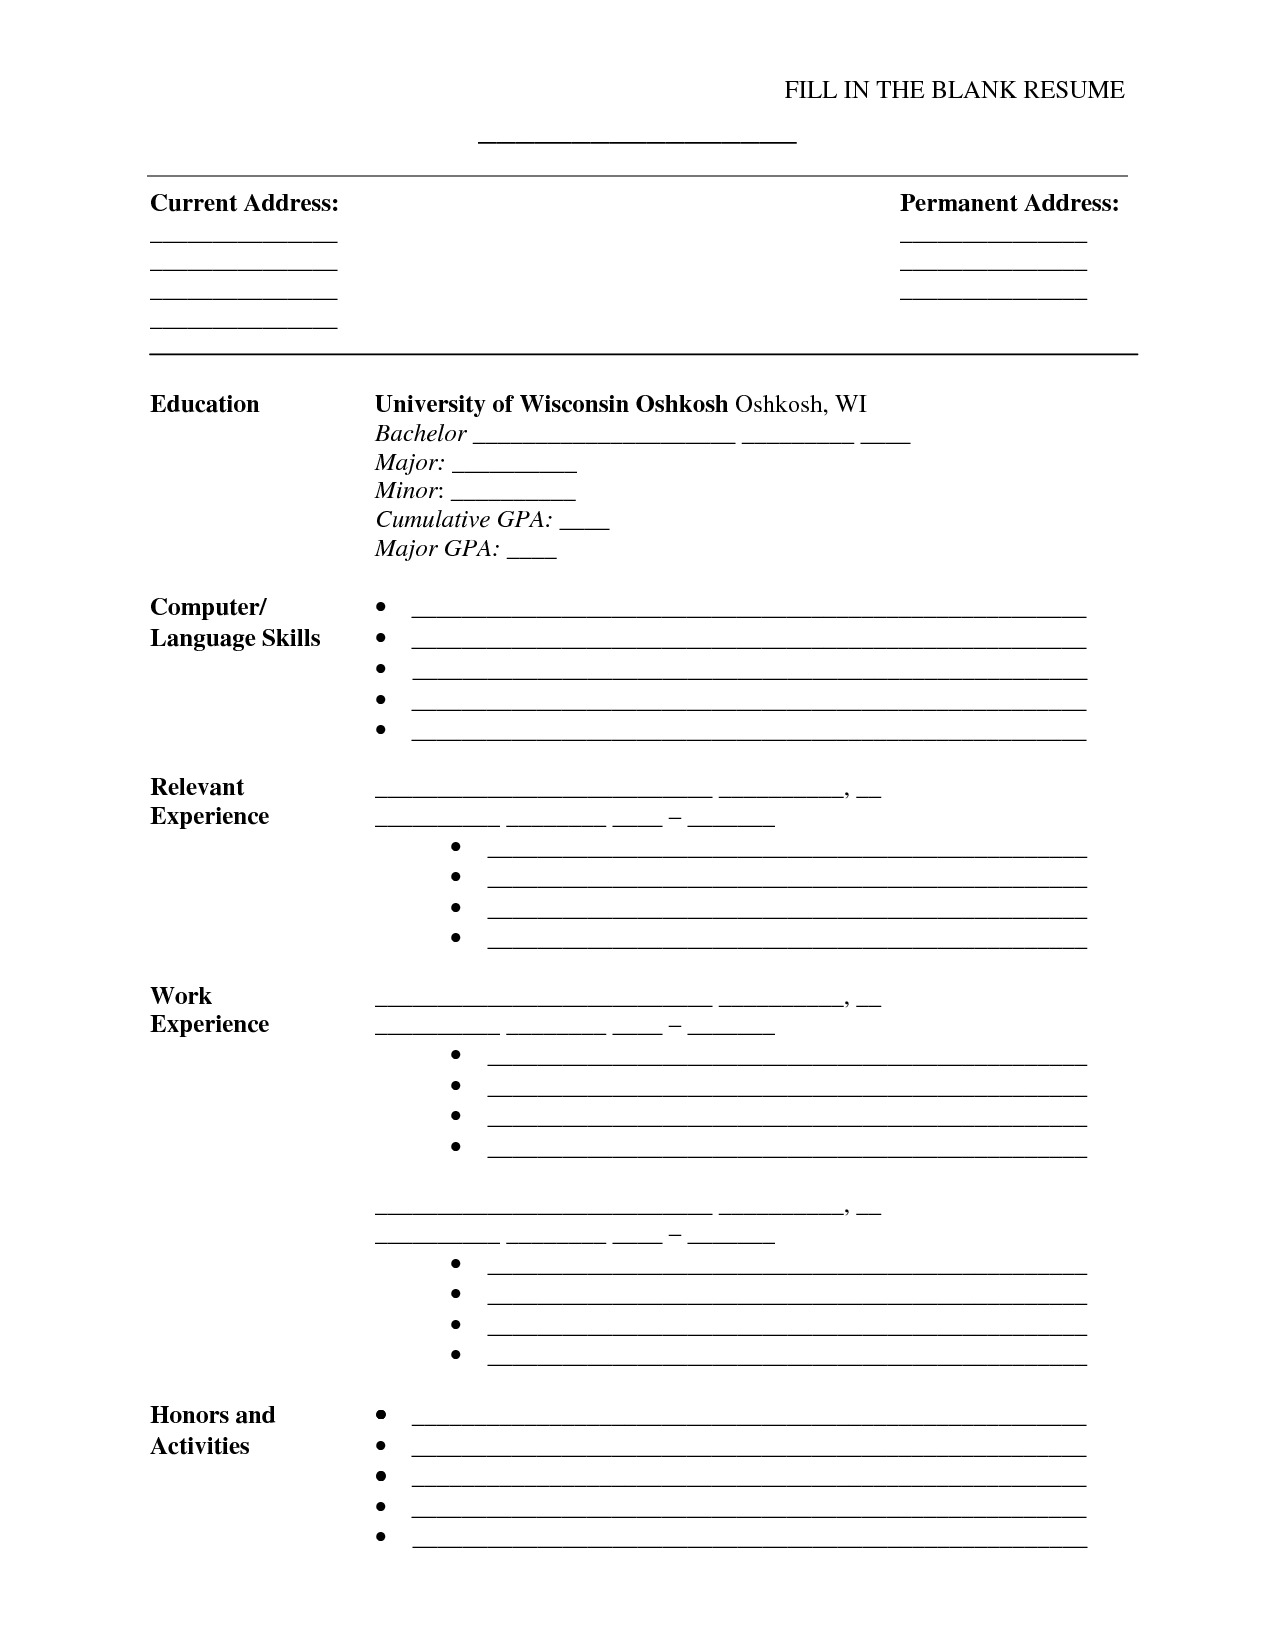 Captivating Fill In The Blank Resume PDF   Http://www.resumecareer.info In Resume Blank Form